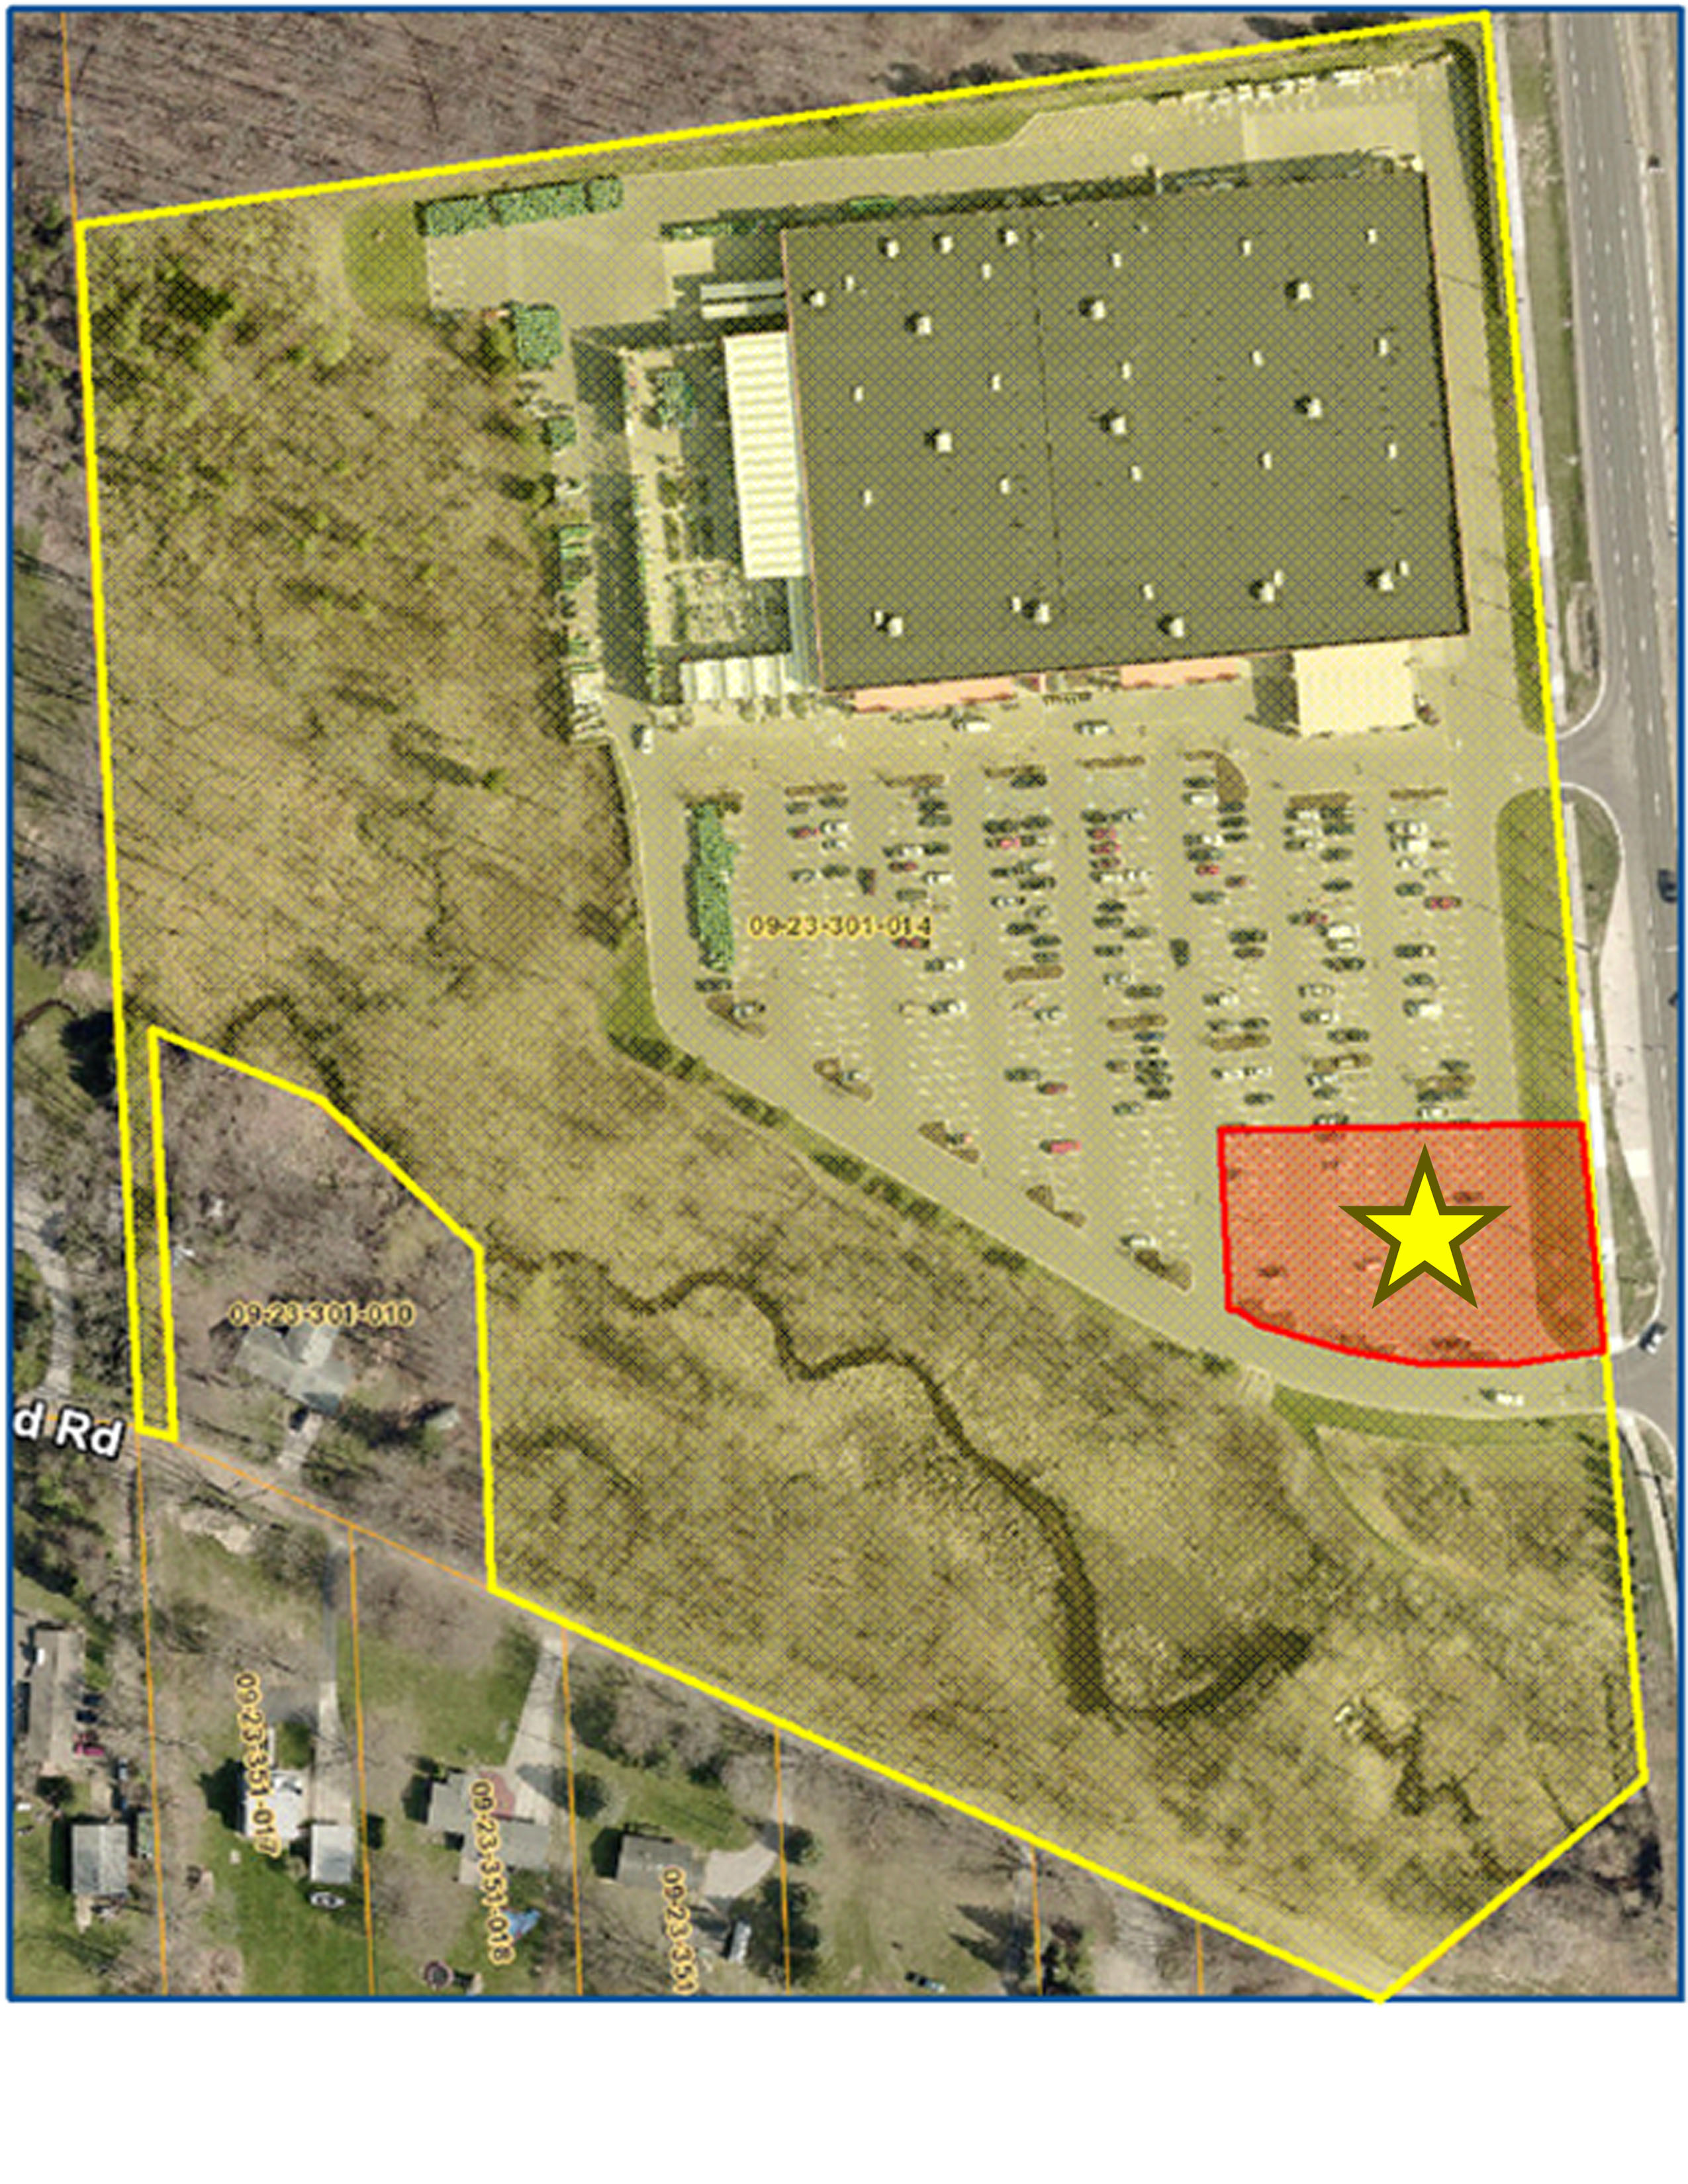 2600 Lapeer Rd., Orion Township, Michigan 48360, ,Retail,For Sale,2600 Lapeer Rd.,1059